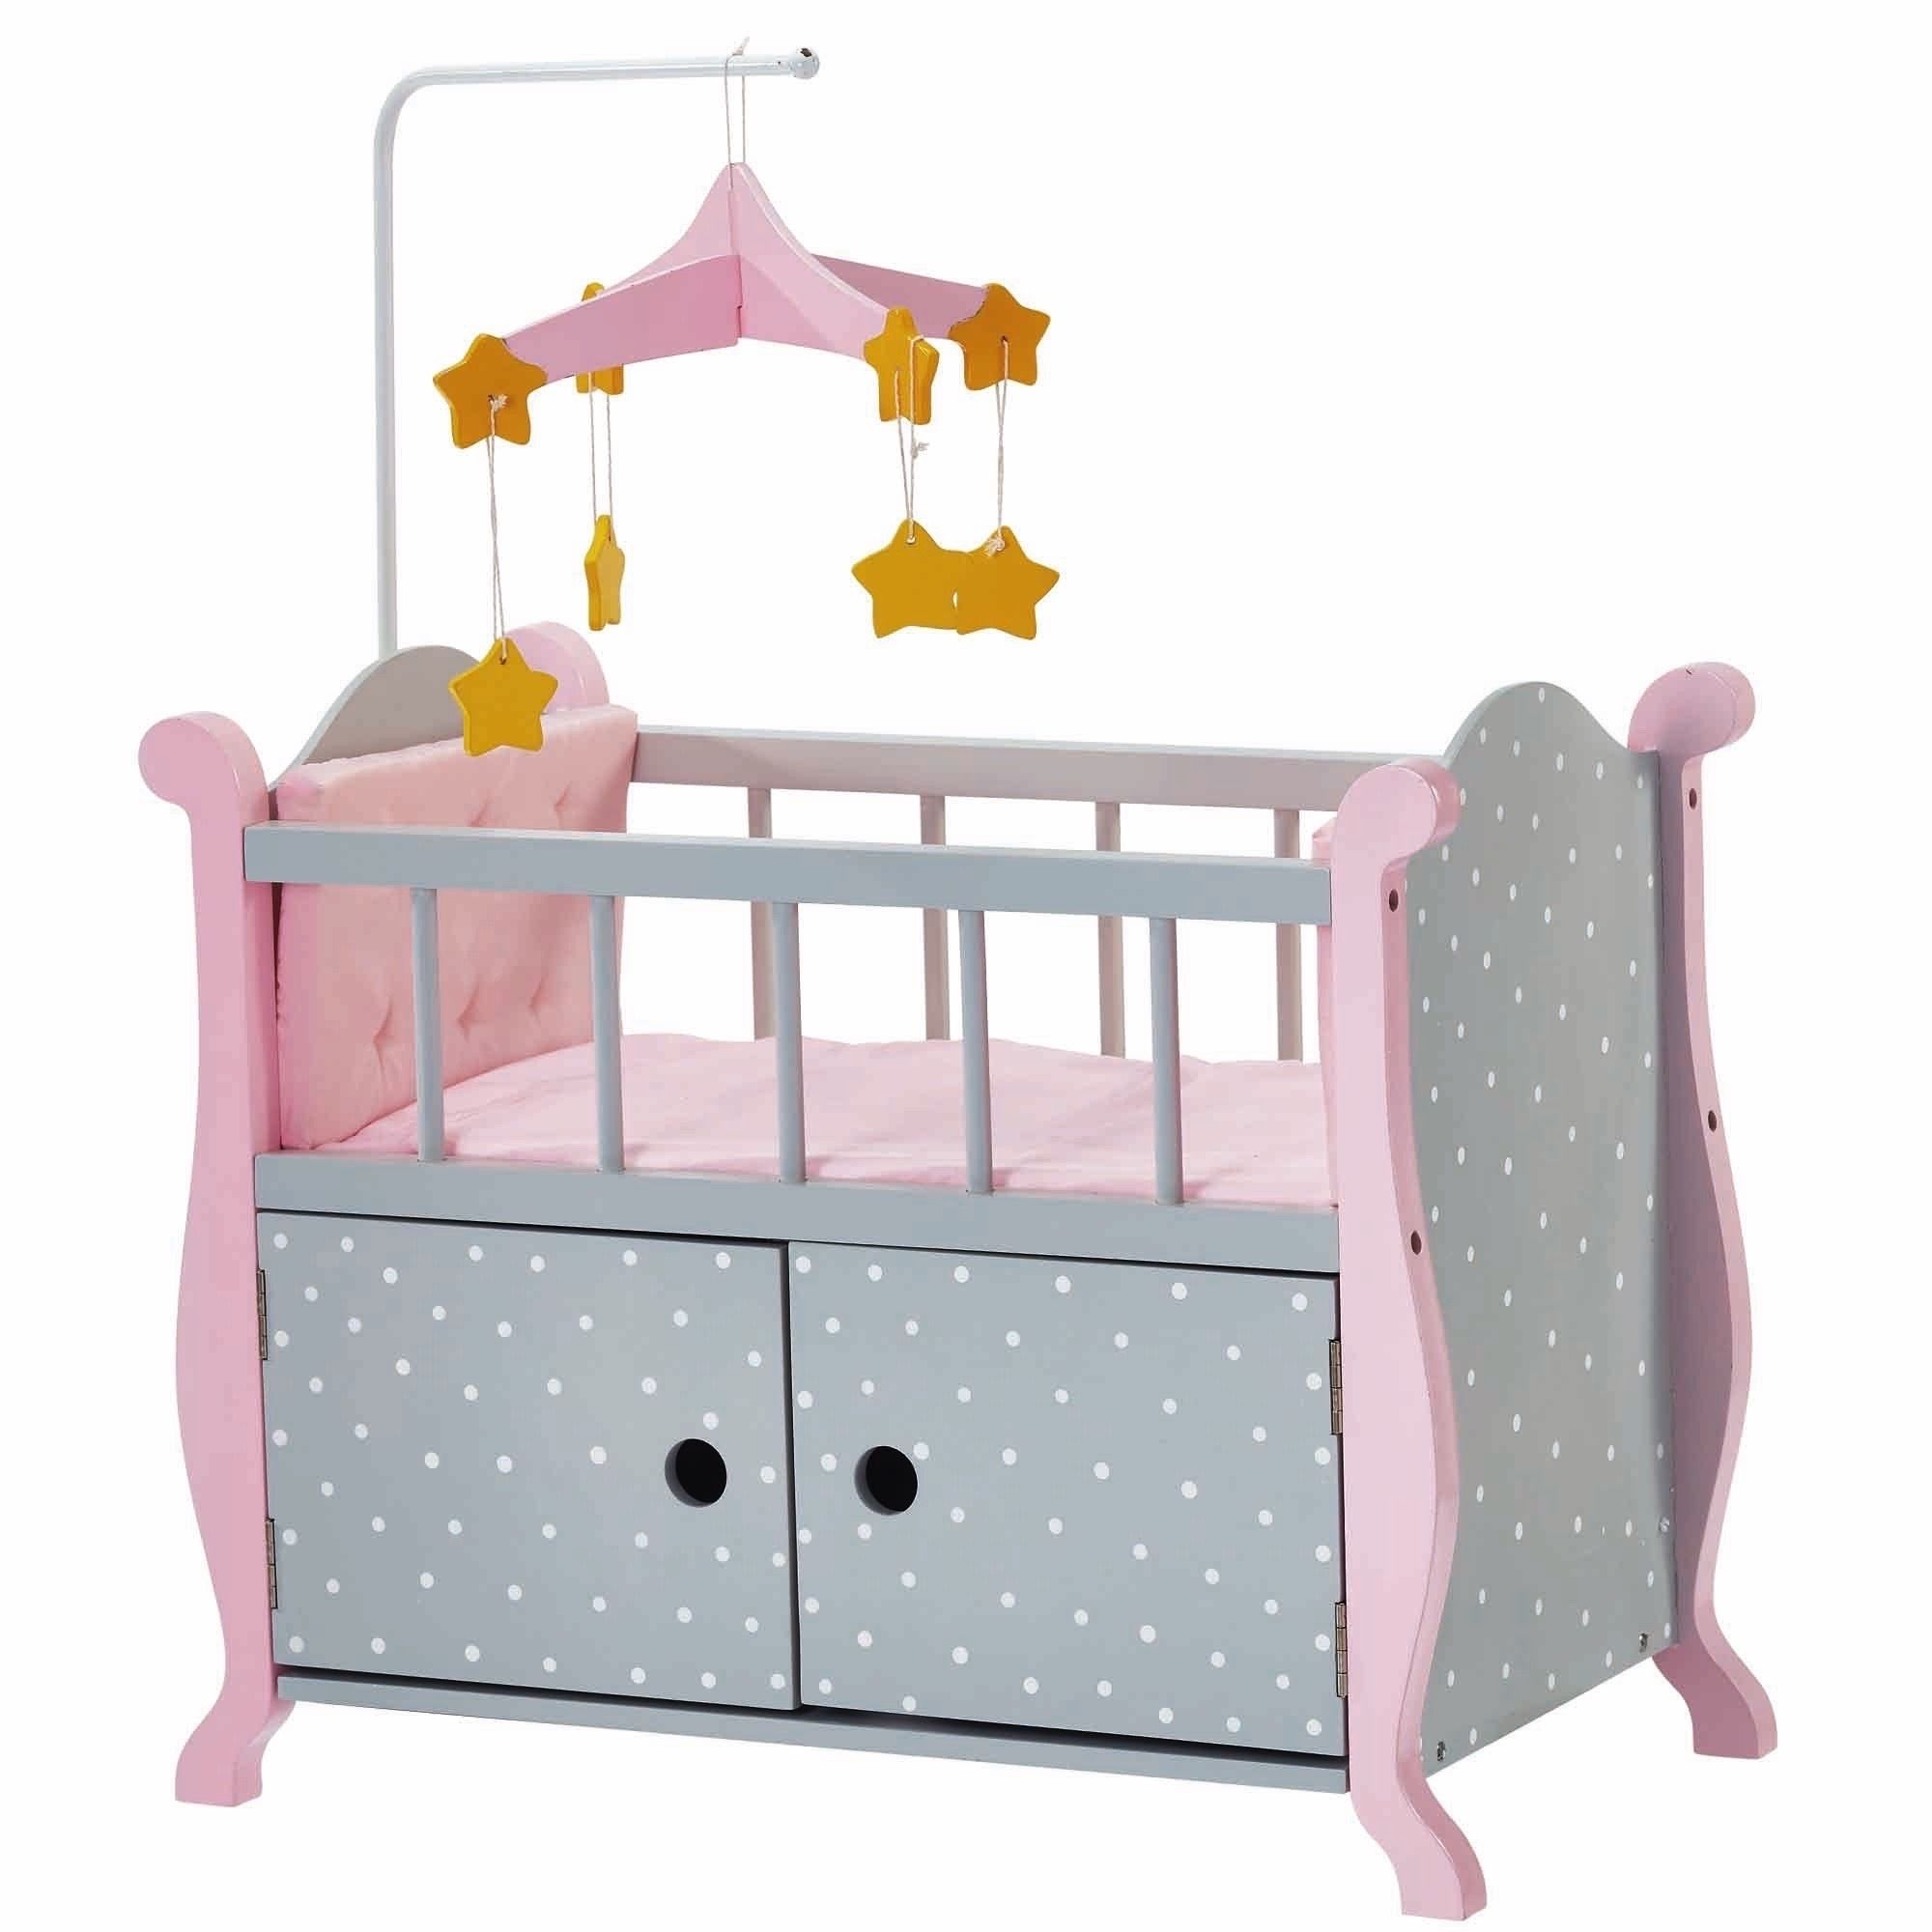 of multipurpose changing dresser a bed and constructed fosterboyspizza with cheap ideas the plus rugged pretty toddler changer size full perfect crib little is inspirational table convertible baby